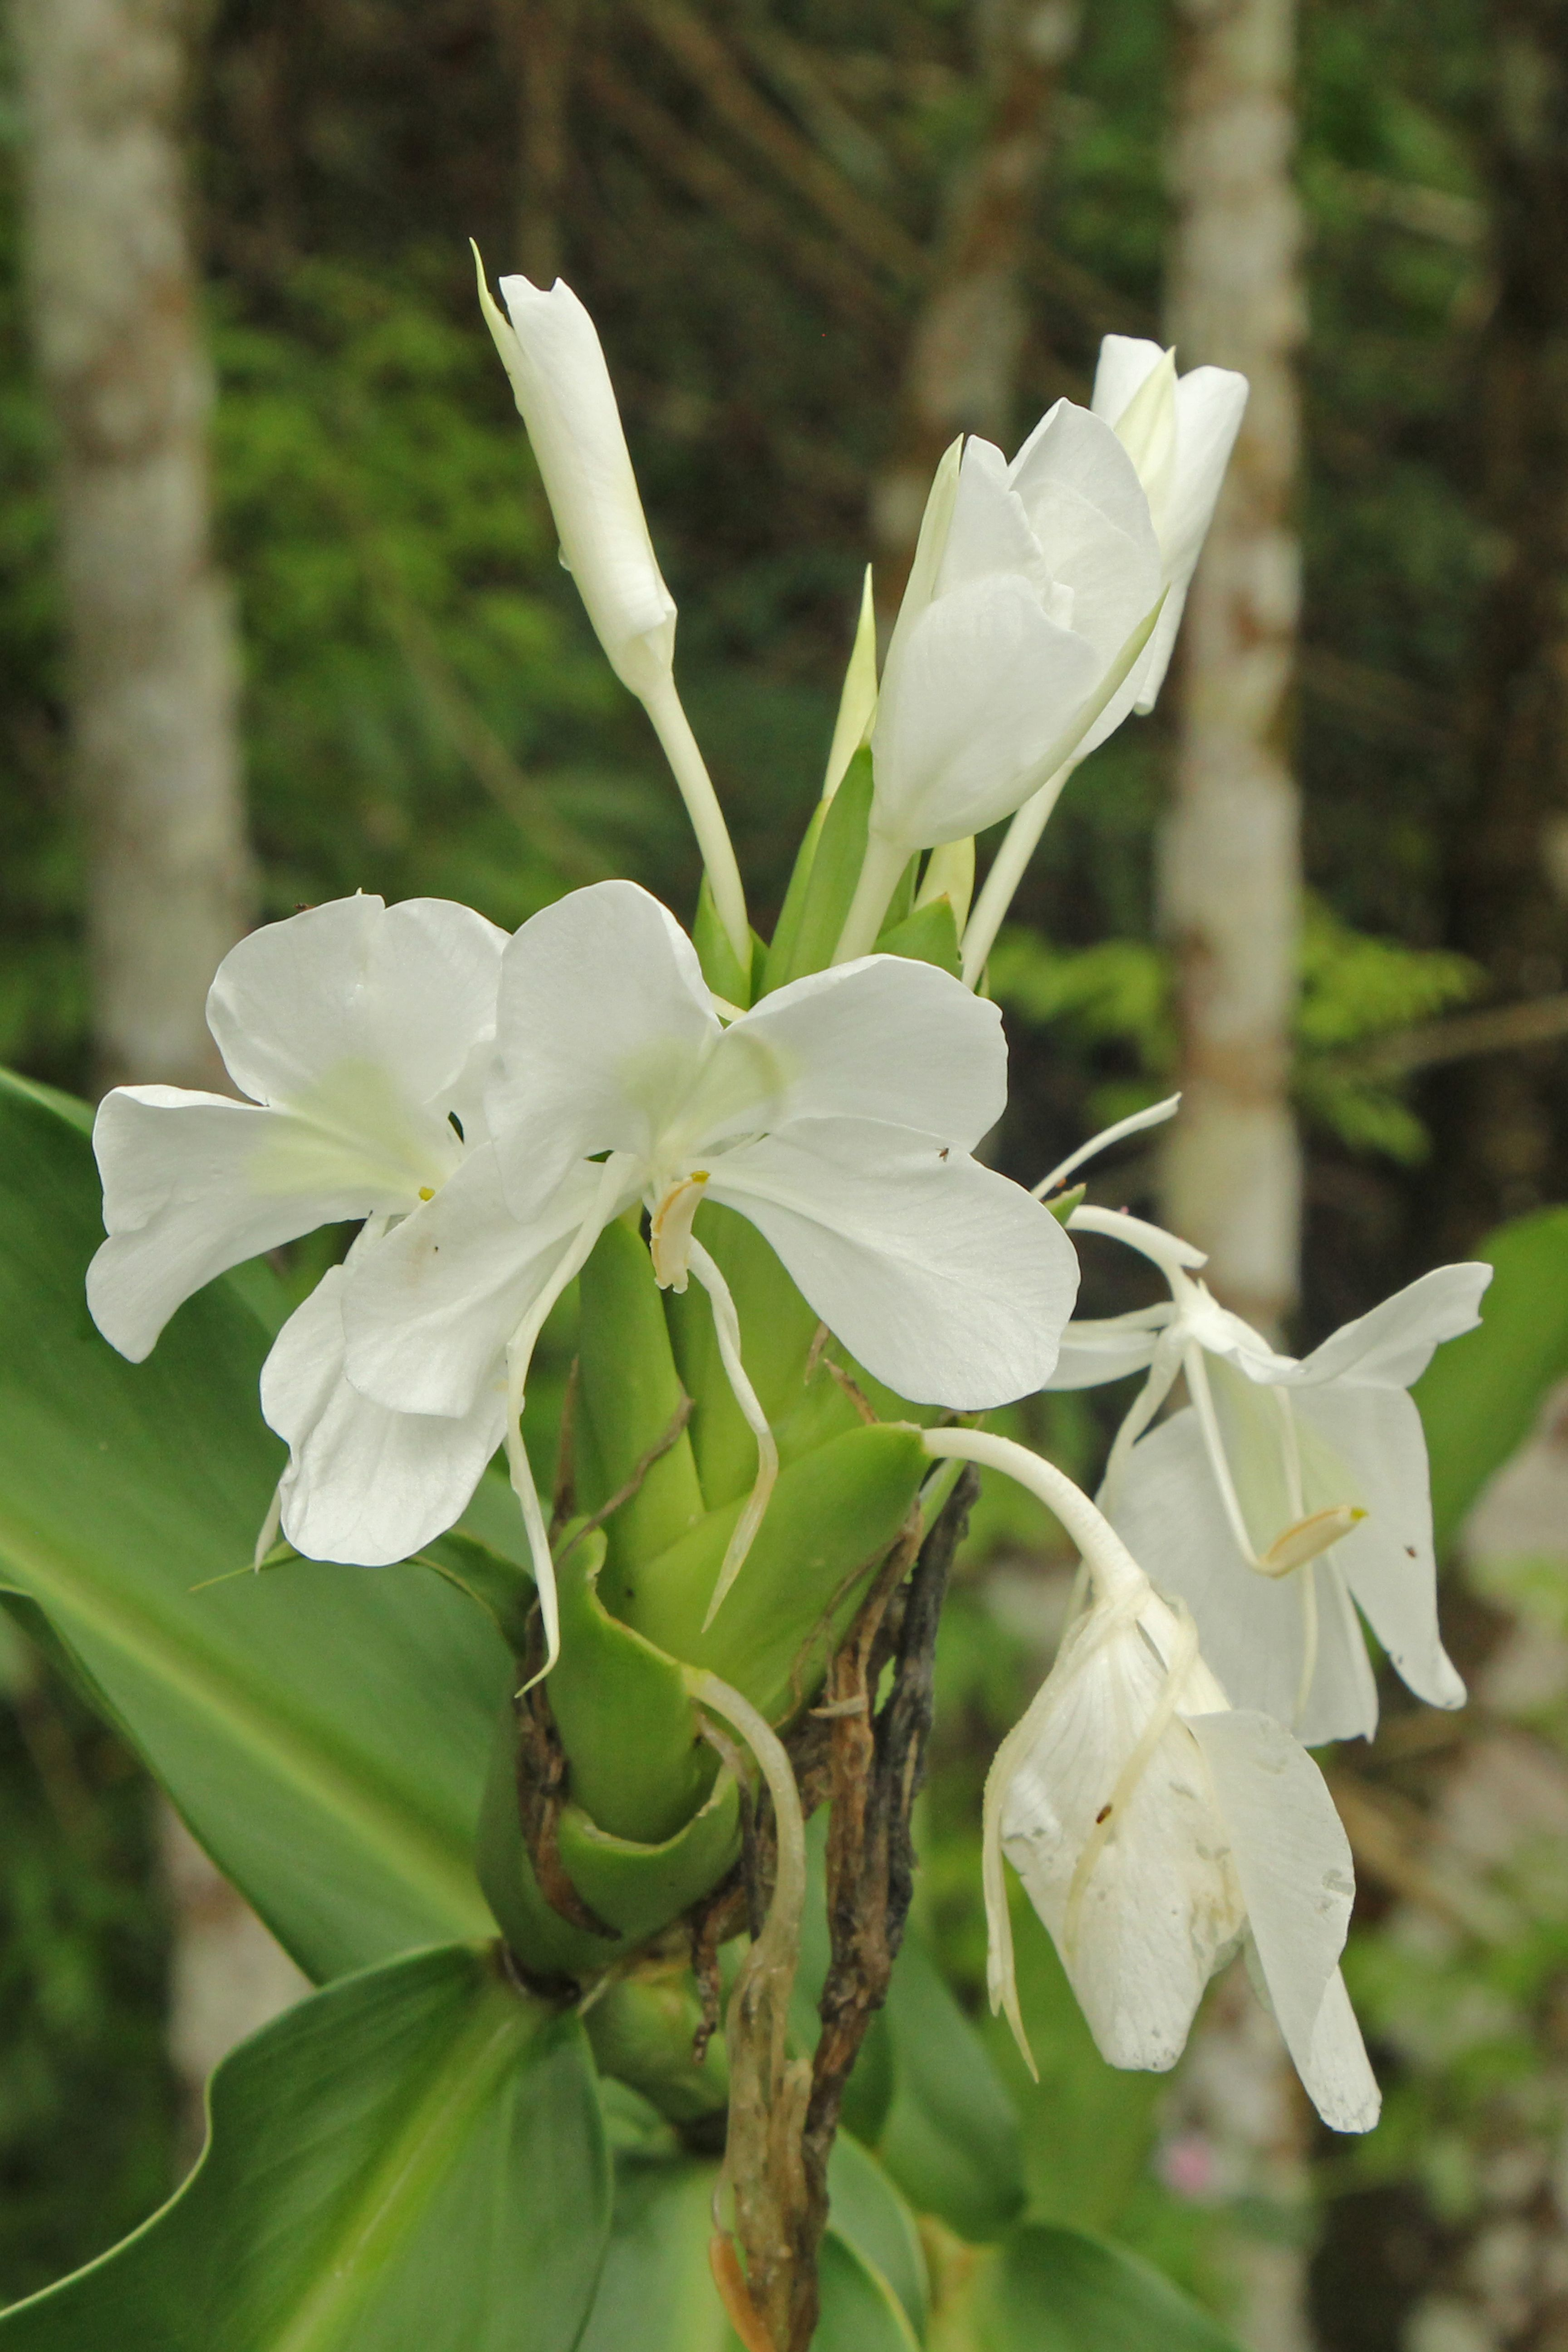 The National Flower Of Cuba Is The White Ginger Lily Ginger Was